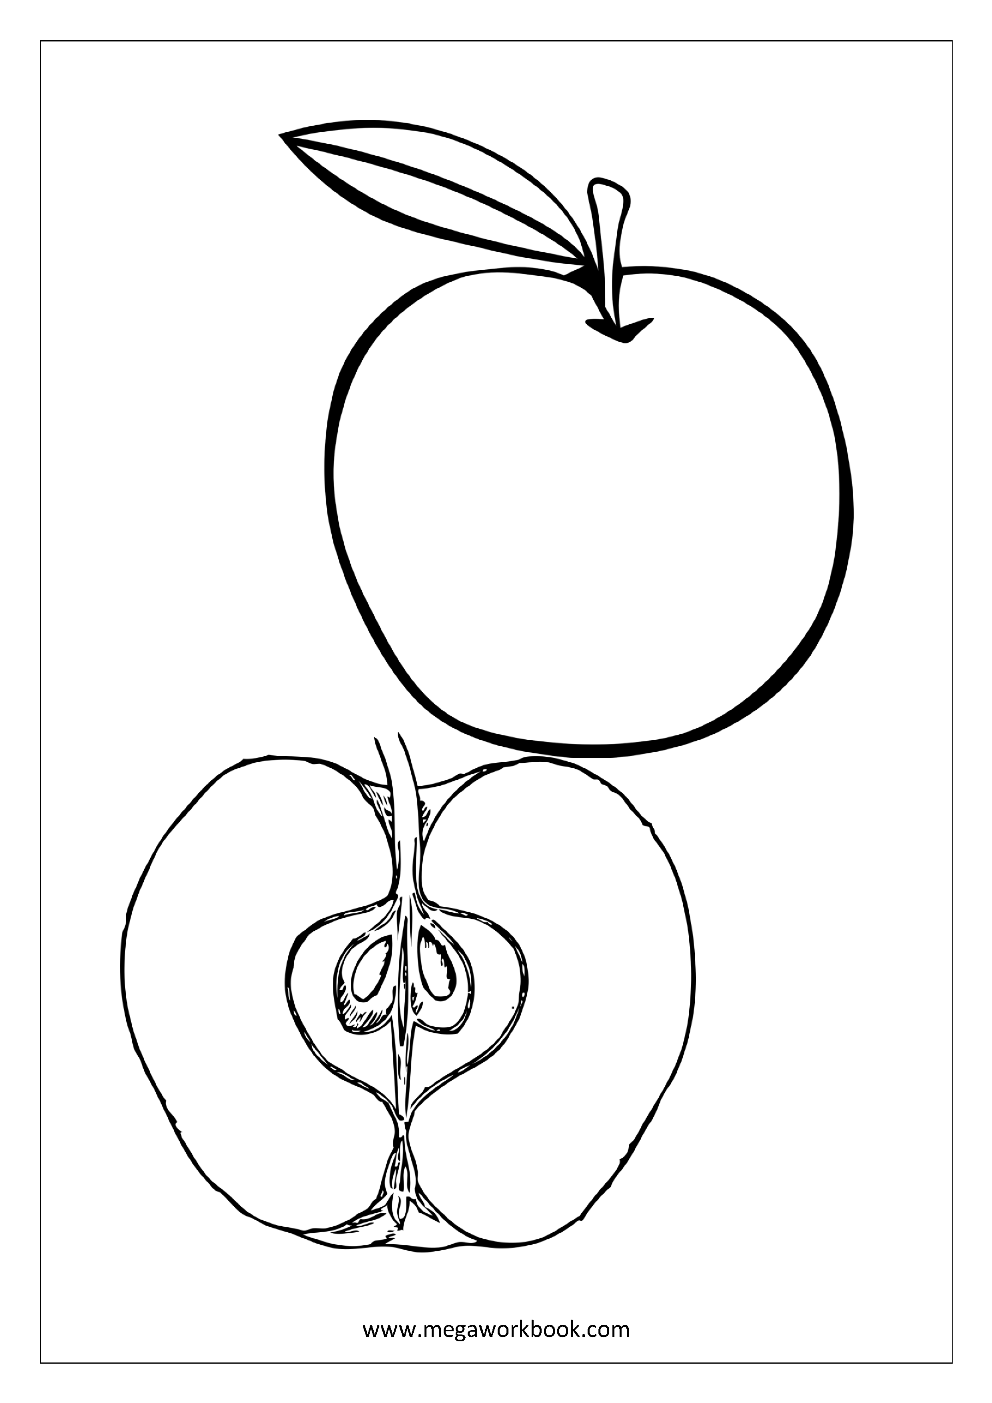 Fruit Coloring Pages Vegetable Coloring Pages Food Coloring Pages Free Printables Megaworkbook